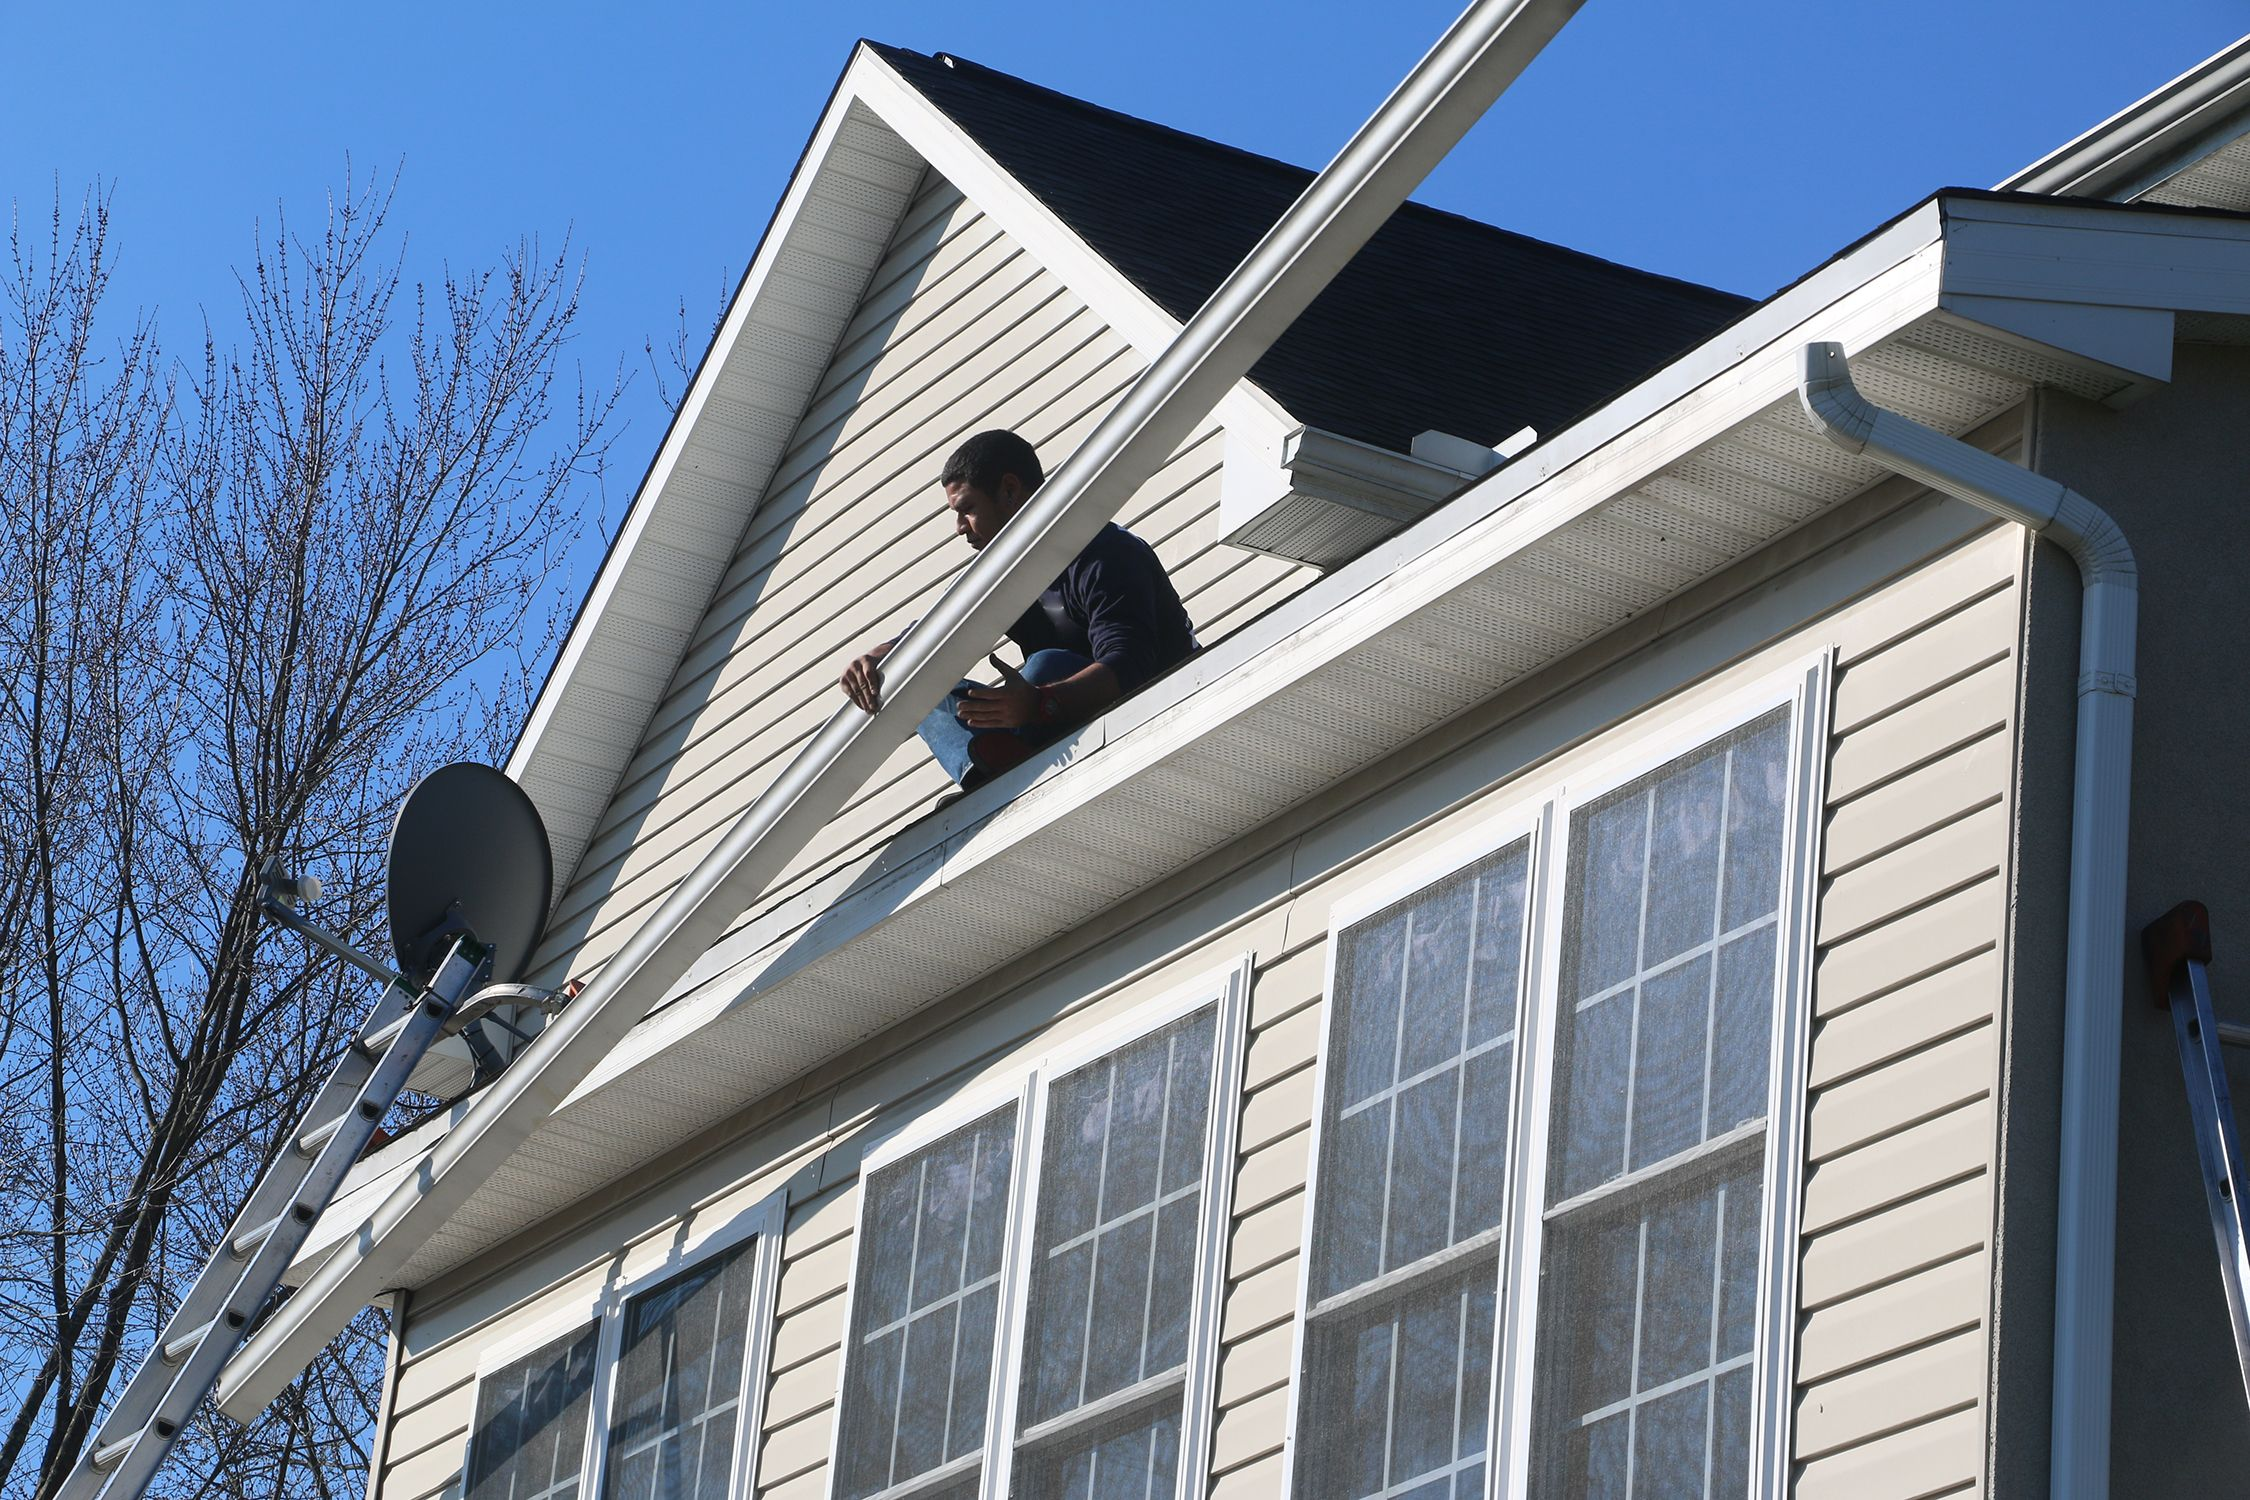 We Specialize In Roofing Siding And Gutters Give Us A Call 864 921 1738 Or Visit Us Online At Https Roebuckroofing Com Spartanburg Roofing Siding Gutters